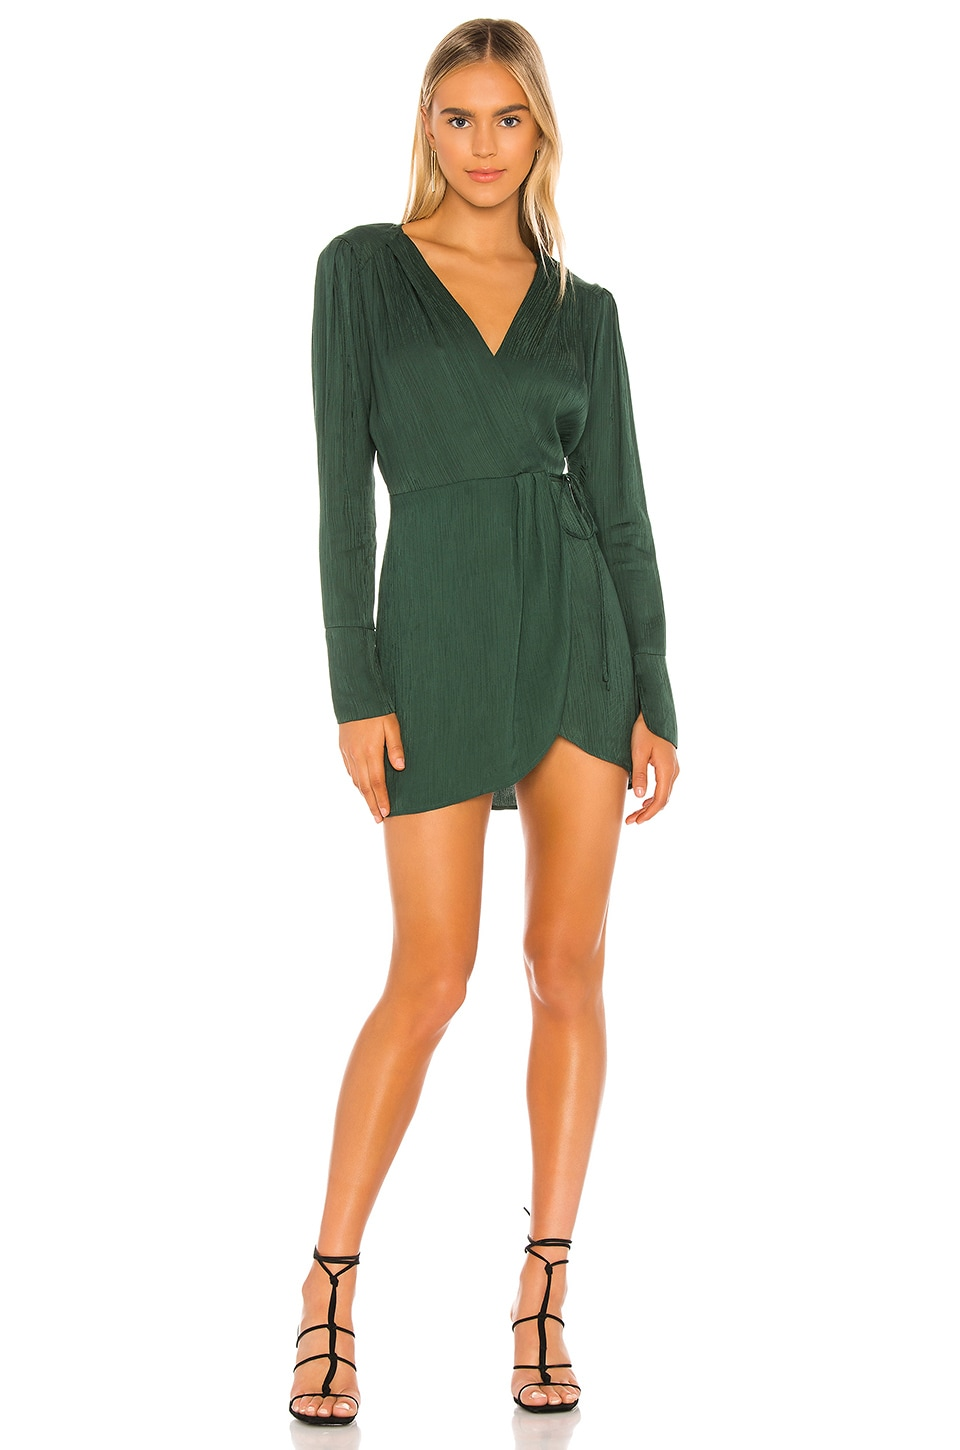 Blue Life Rocio Dress in Forrest Green